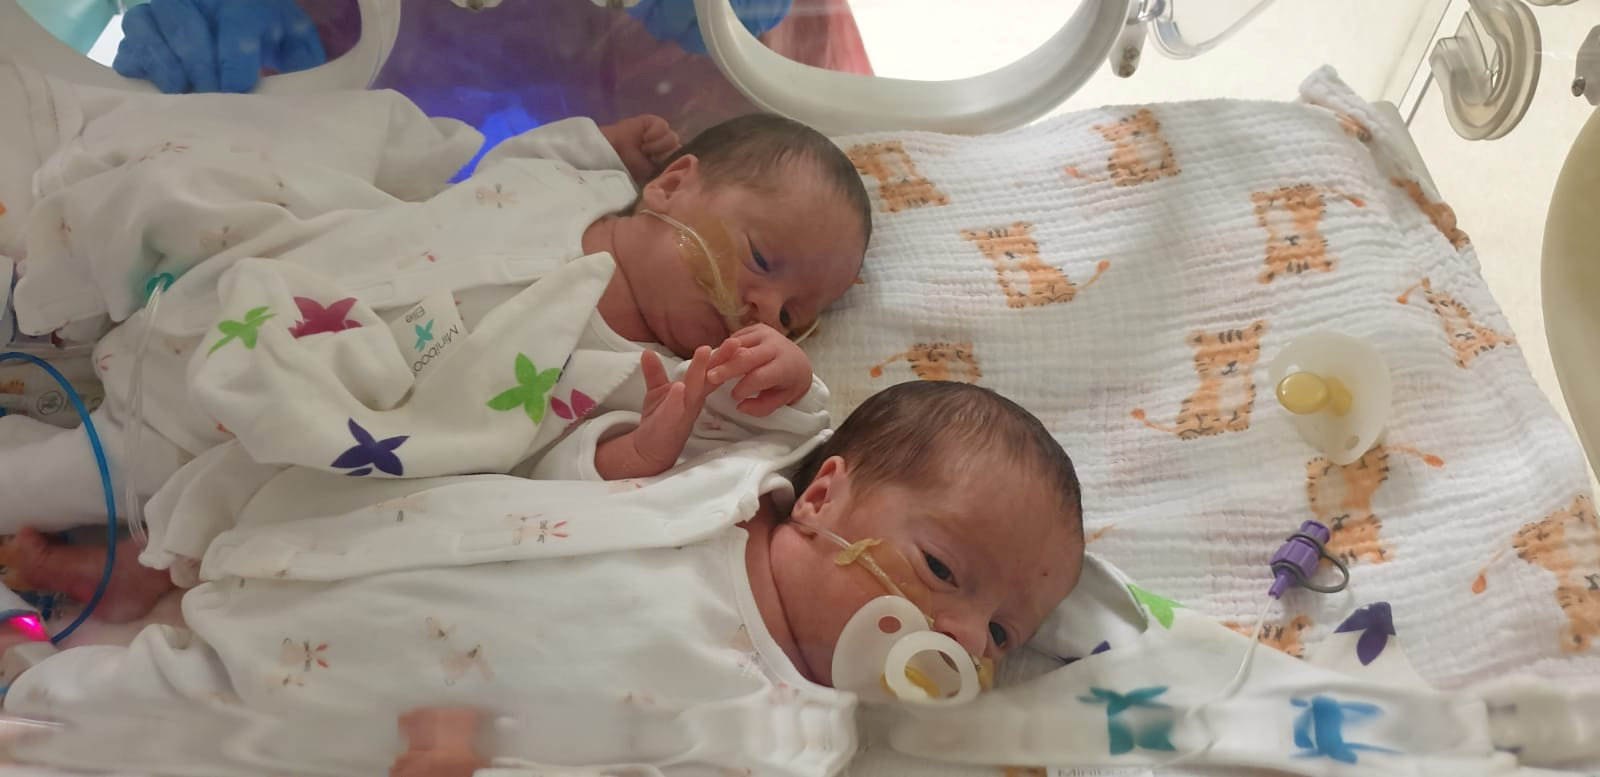 """The parents of premature twins thought to be the first in the UK born with Covid-19 have spoken of their joy after they were declared fit and healthy and allowed home. Sarah Curtis, 32, and husband Aaron, 33, were horrified when tests came back and revealed Sarah was positive for Covid-19 just days before she gave birth. She was asymptomatic but felt """"scared"""" and """"annoyed"""" with herself as she feared she was putting the unborn twins at risk. Doctors were unsure if mothers could pass on the virus to their babies, or what its effects would be, which left them worried.  Sarah went into labour ten weeks early on July 3 but her husband Aaron couldn't stay with her due to Covid restrictions, and welcomed 3lbs Kenna and Lissa into the world.  Doctors confirmed they were born with the killer virus, which was transferred to them via the placenta."""